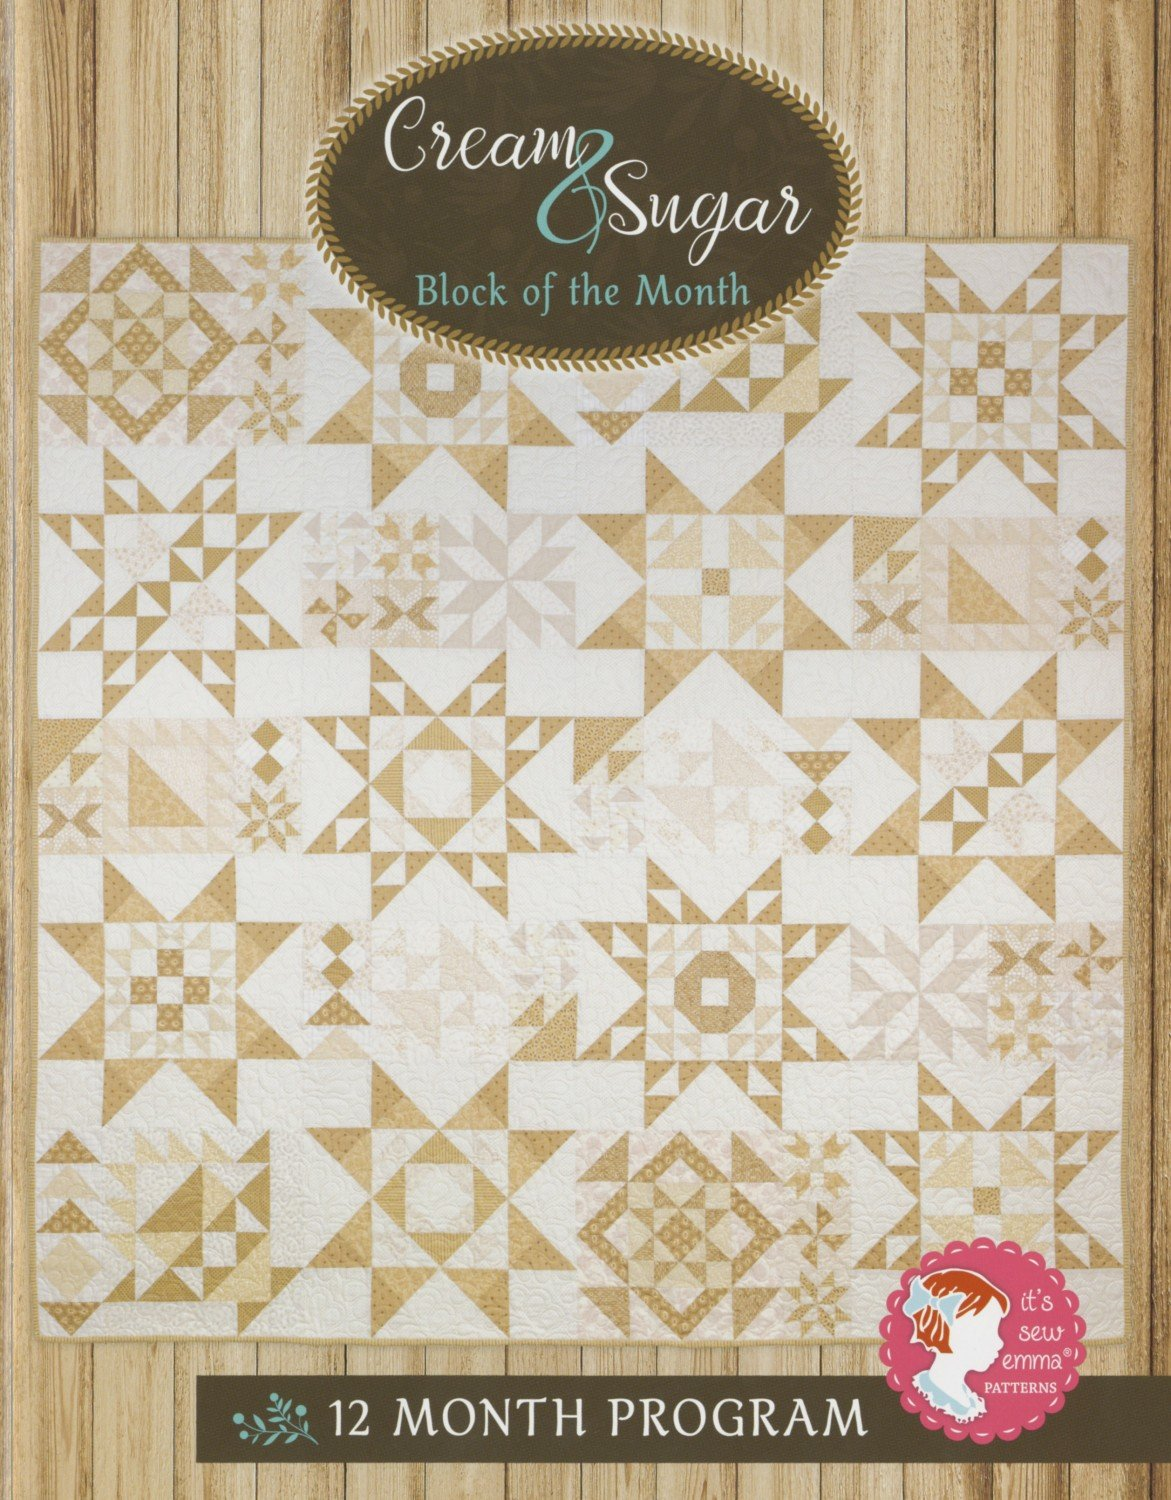 Cream And Sugar quilt Kit 80 1/2 X 80 1/2